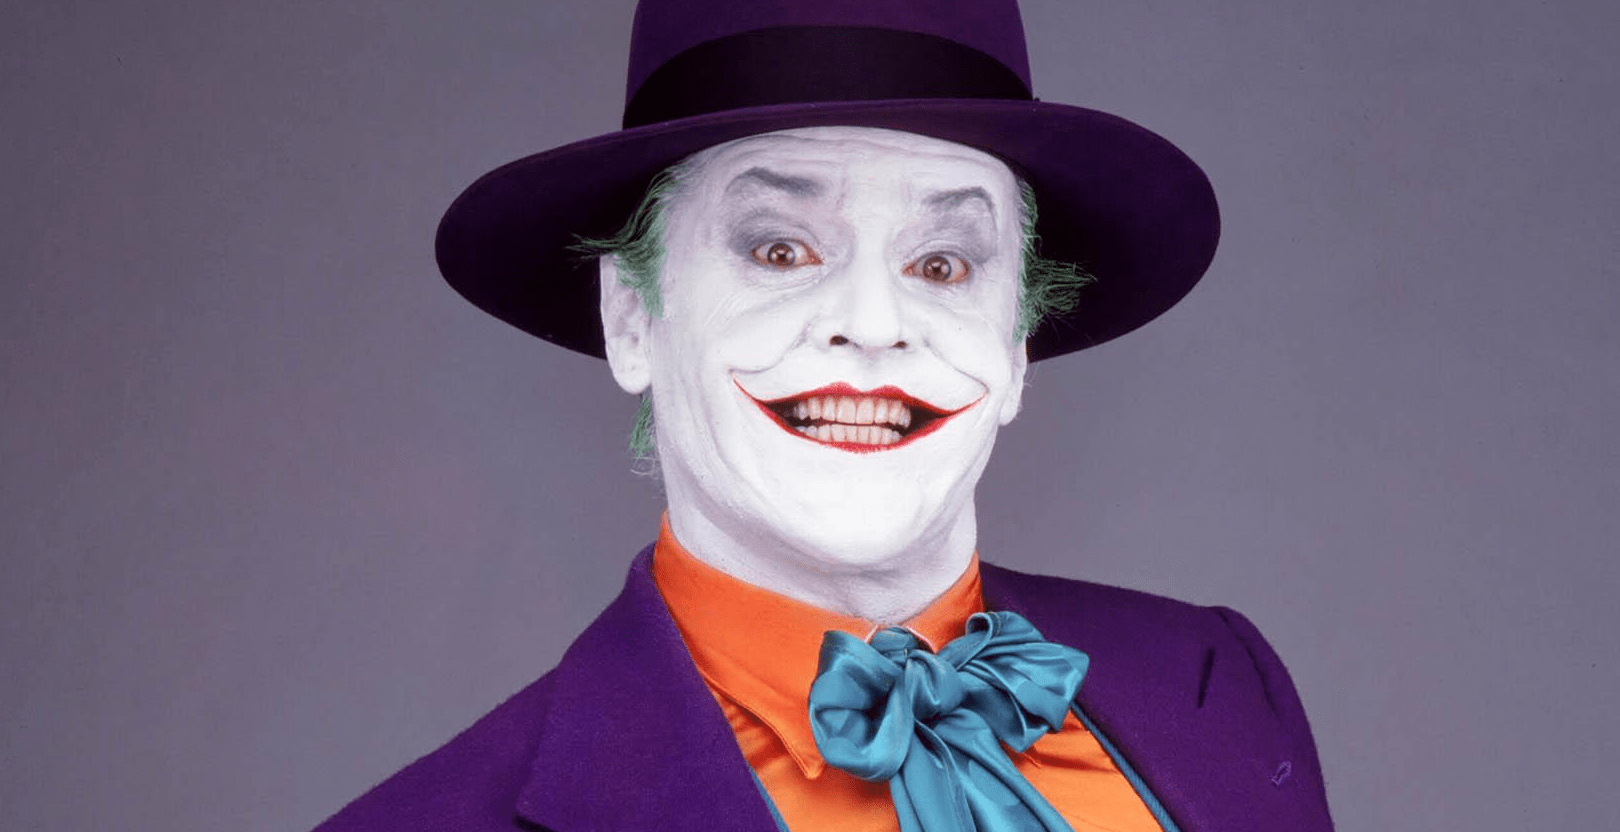 Who Should Play the Joker? Leonardo DiCaprio, Say Warner Bros